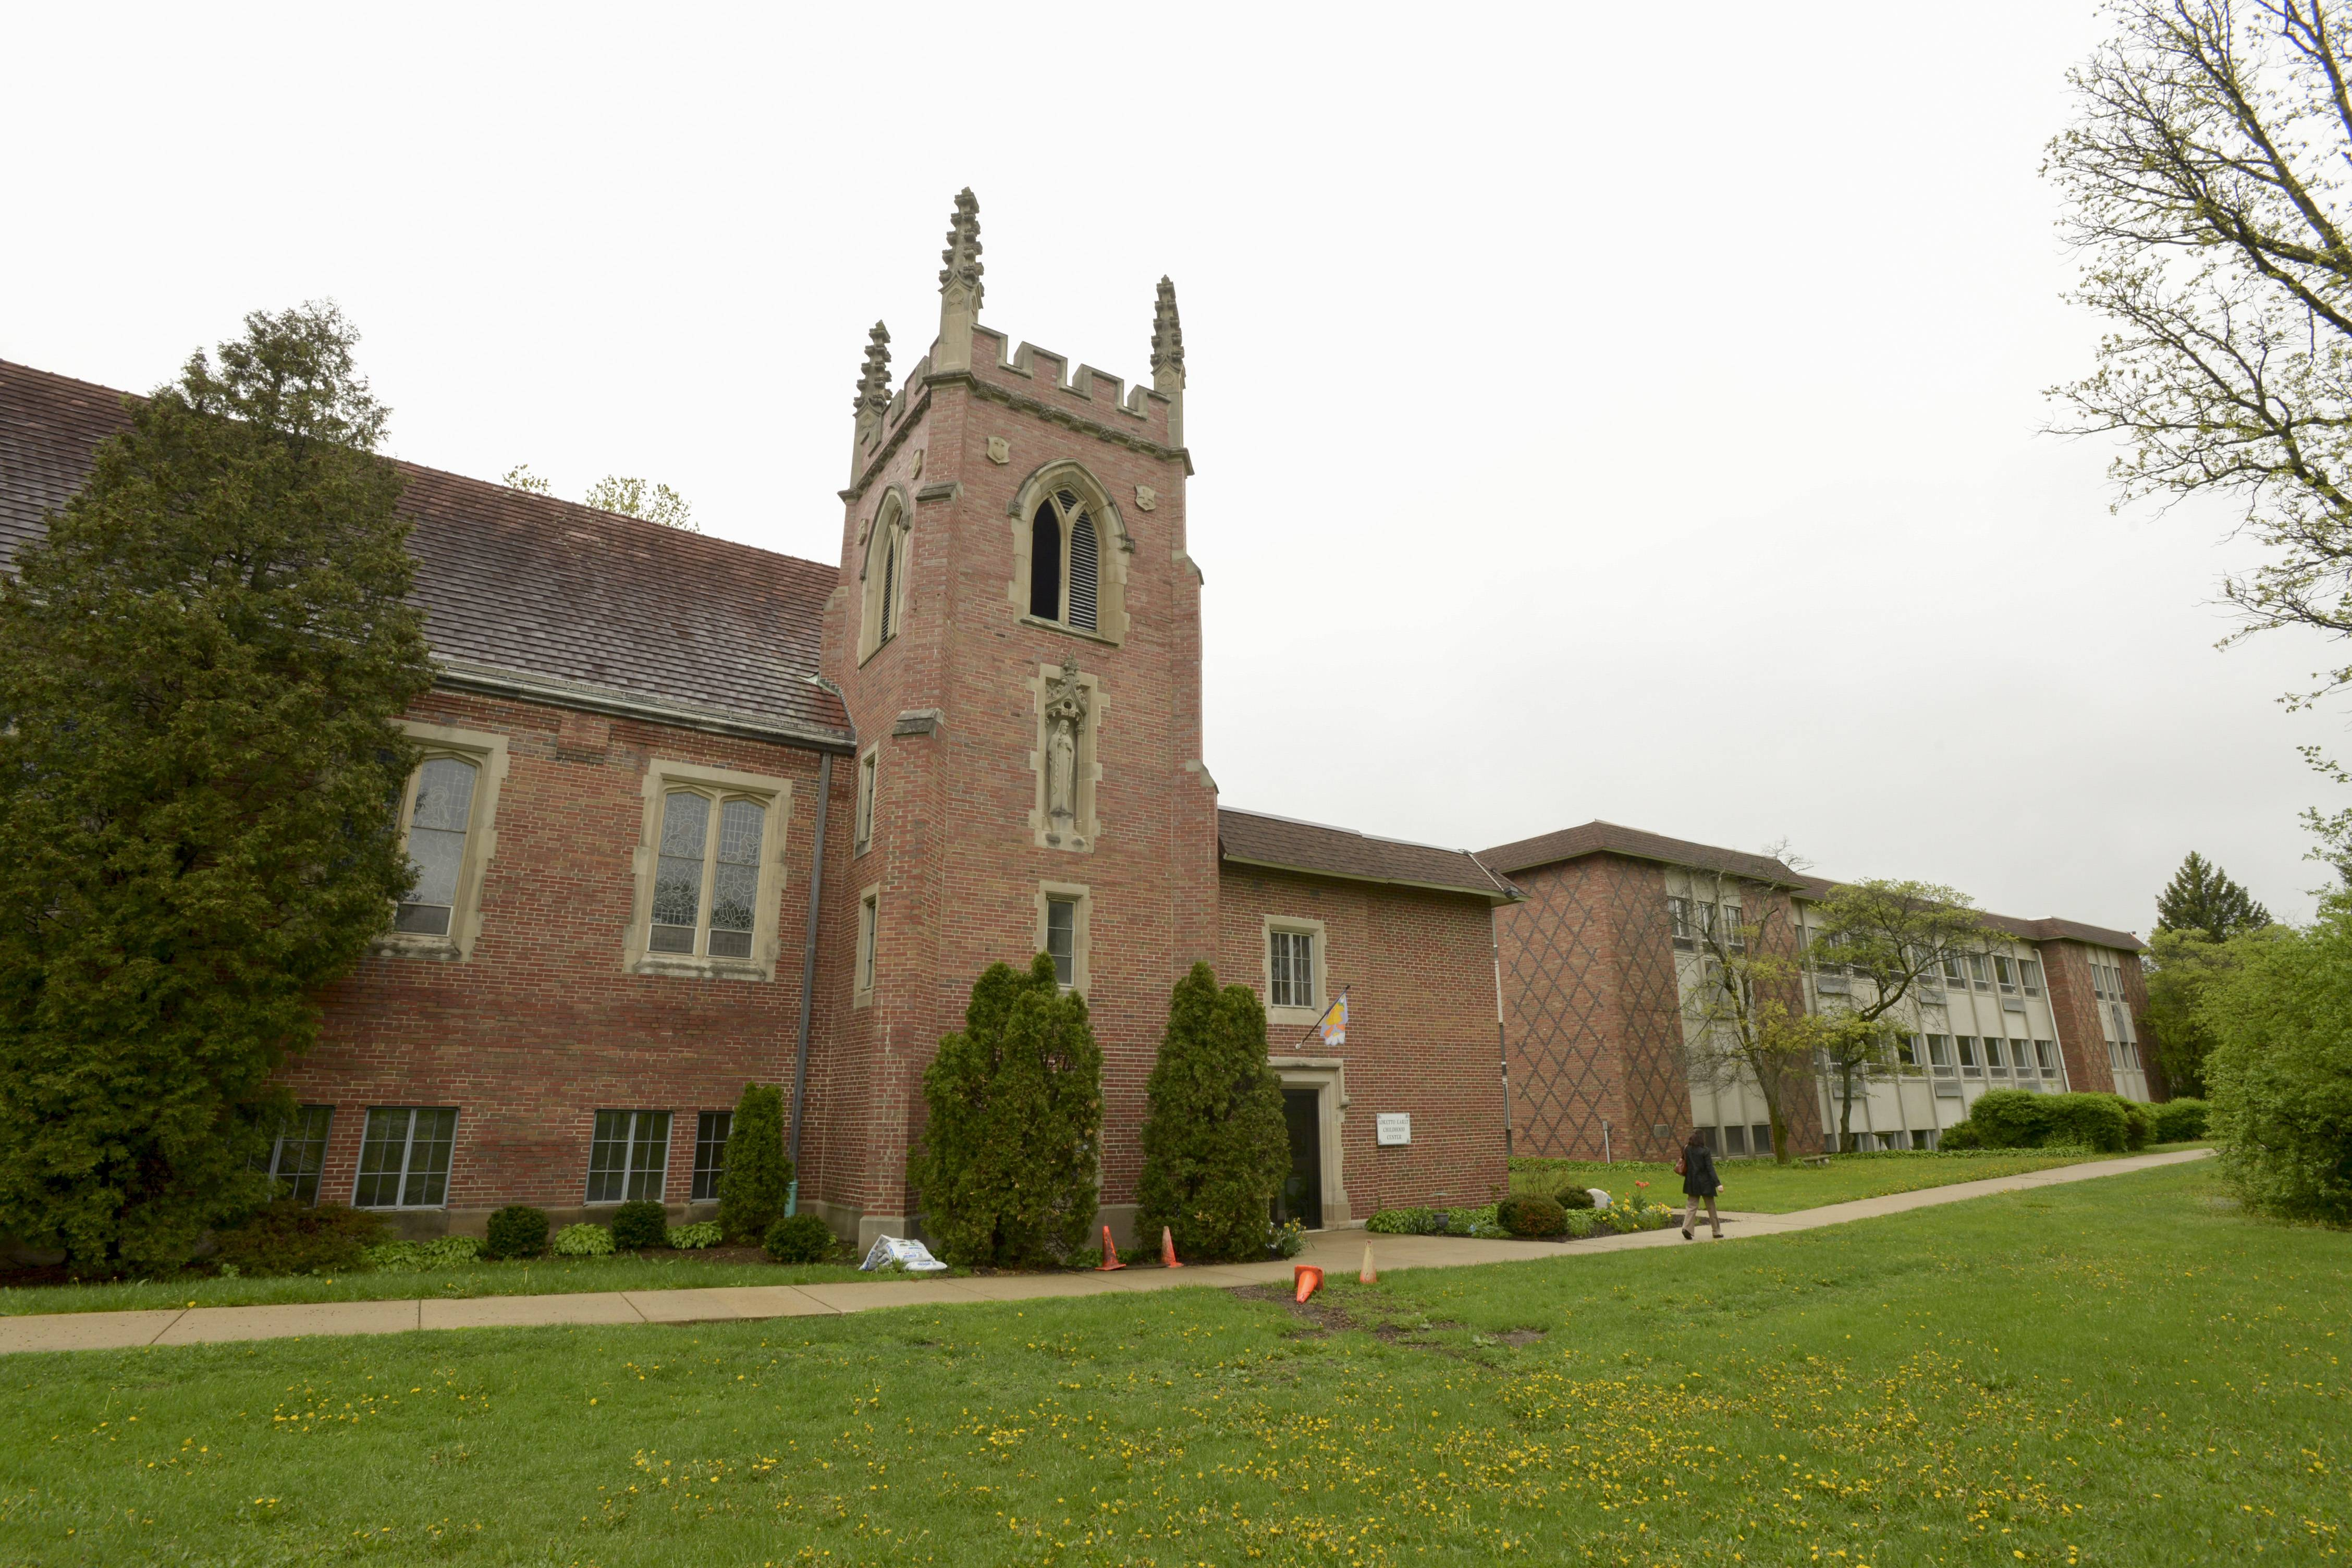 There are plans to sell the Wheaton property that houses the Loretto Early Childhood Center, Institute of the Blessed Virgin Mary Provincial Offices, the Loretto Convent and the Loretto Ministry Center by 2016.